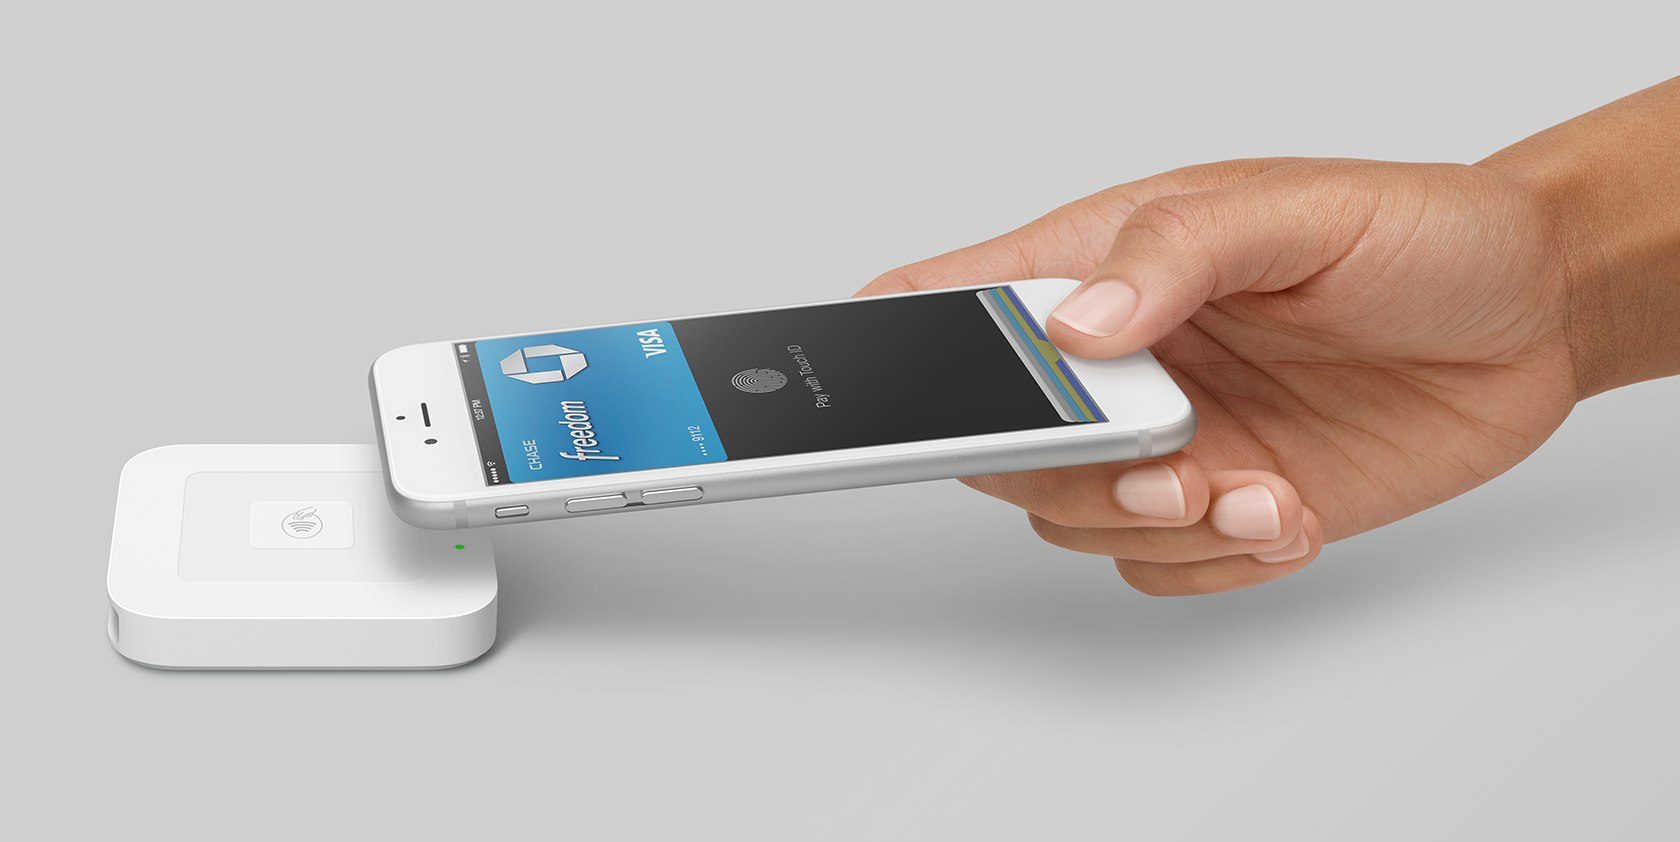 Image of hand holding iPhone paying with Apple Pay near Square contactless and chip reader